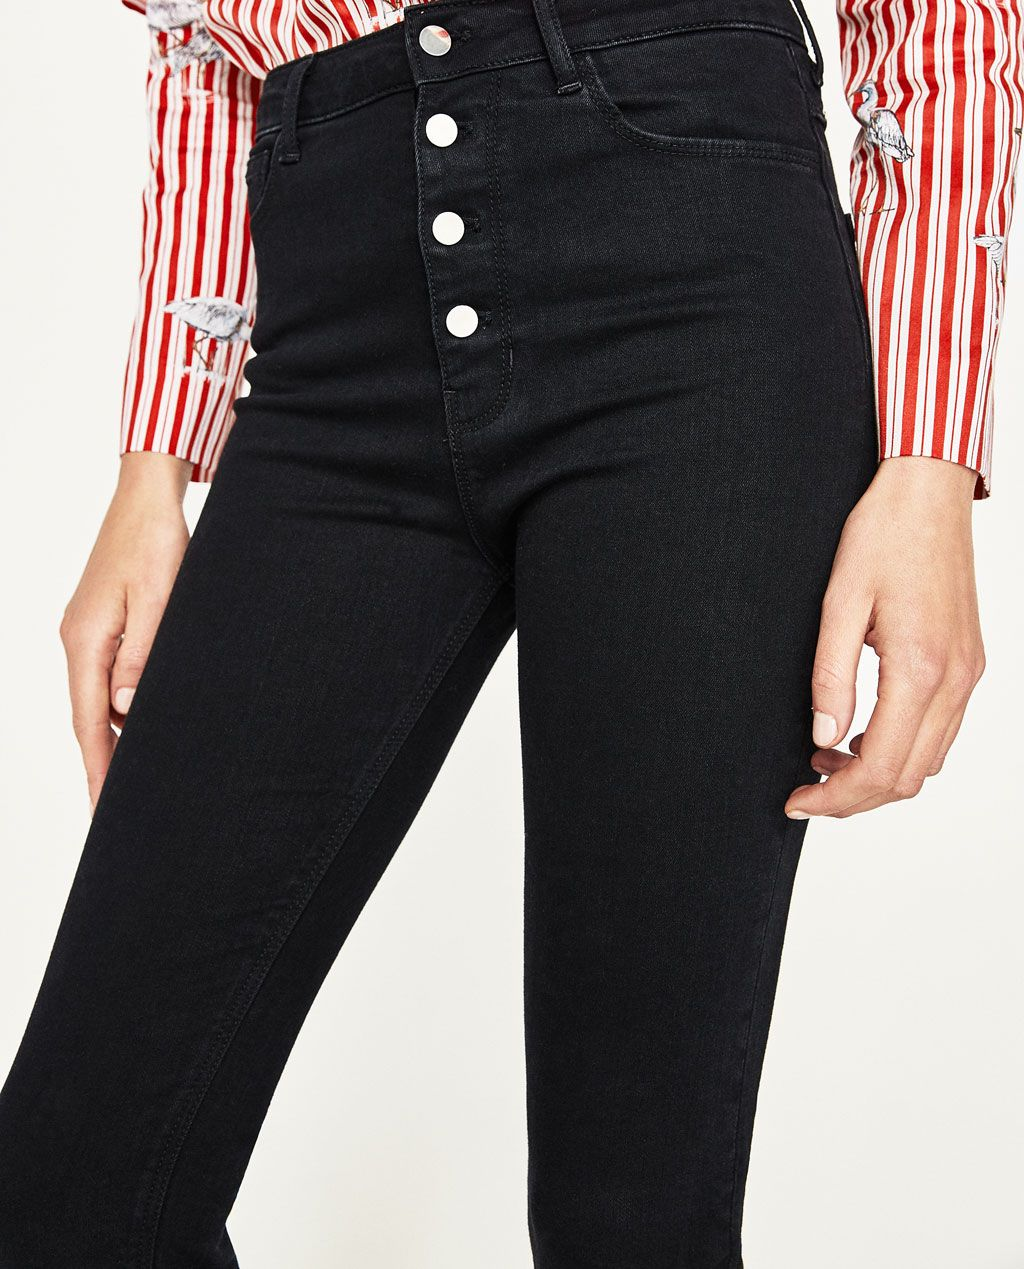 b08a0c5efa HIGH RISE BUTTONED JEANS-View All-JEANS-WOMAN